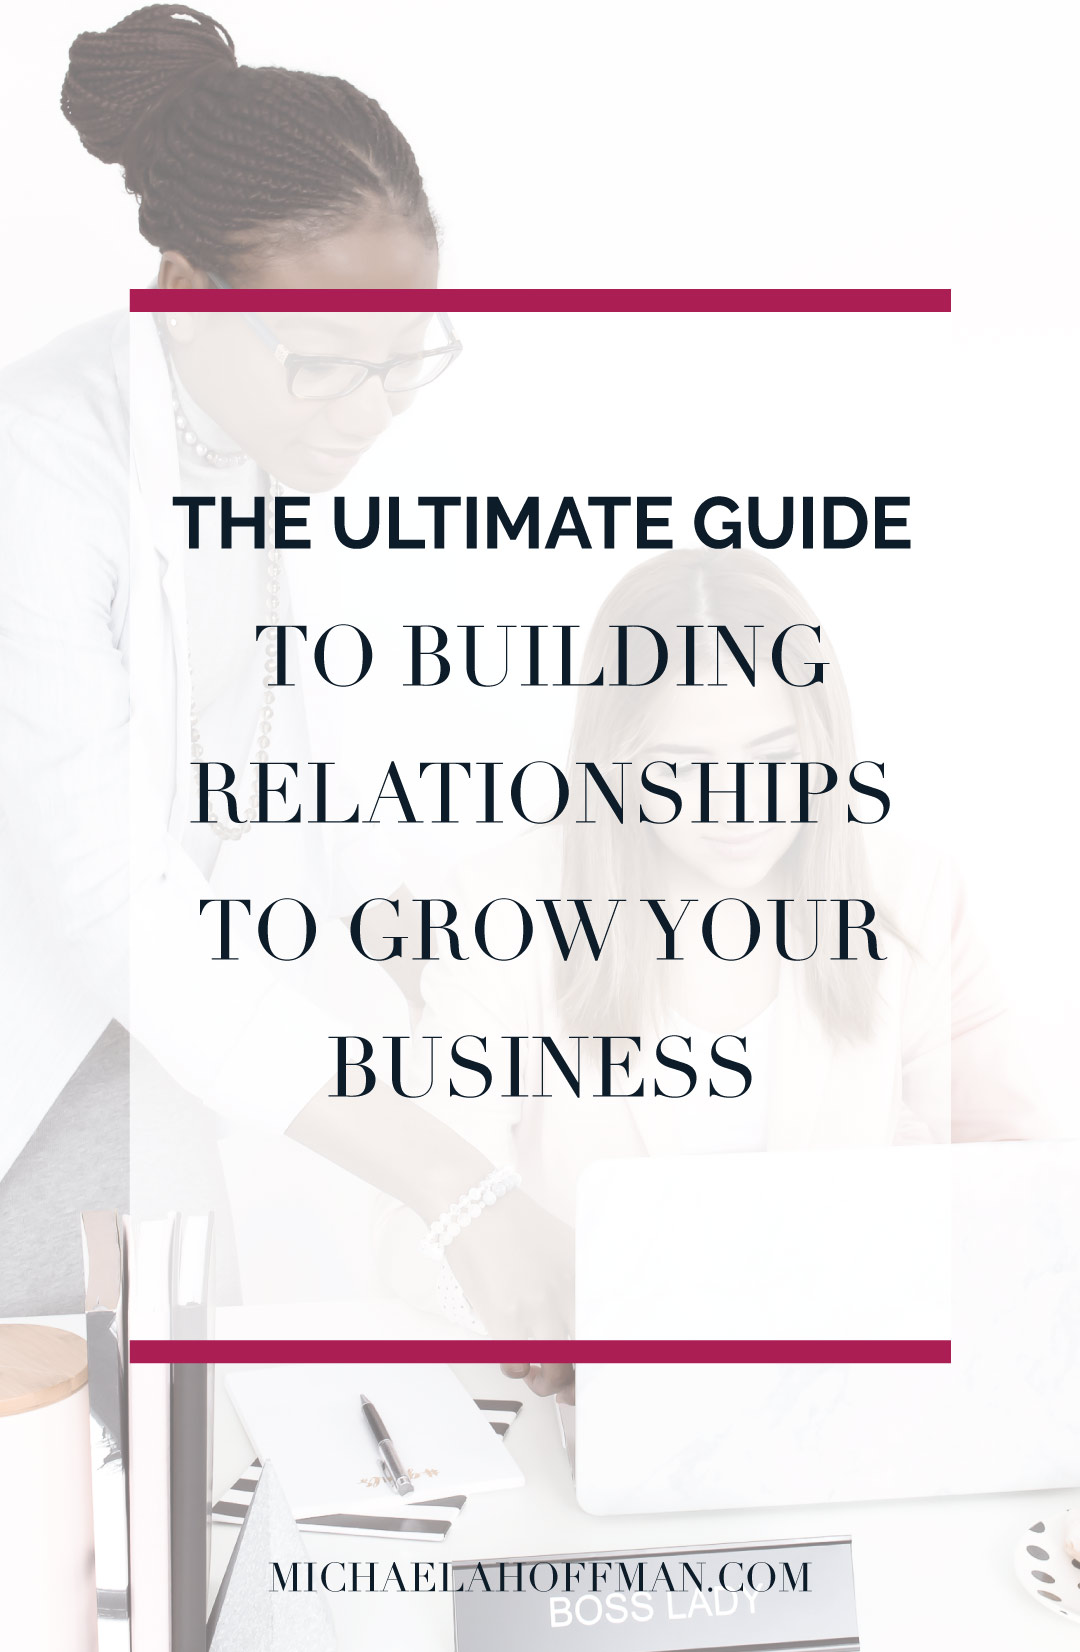 The Ultimate Guide to building relationships to grow your business